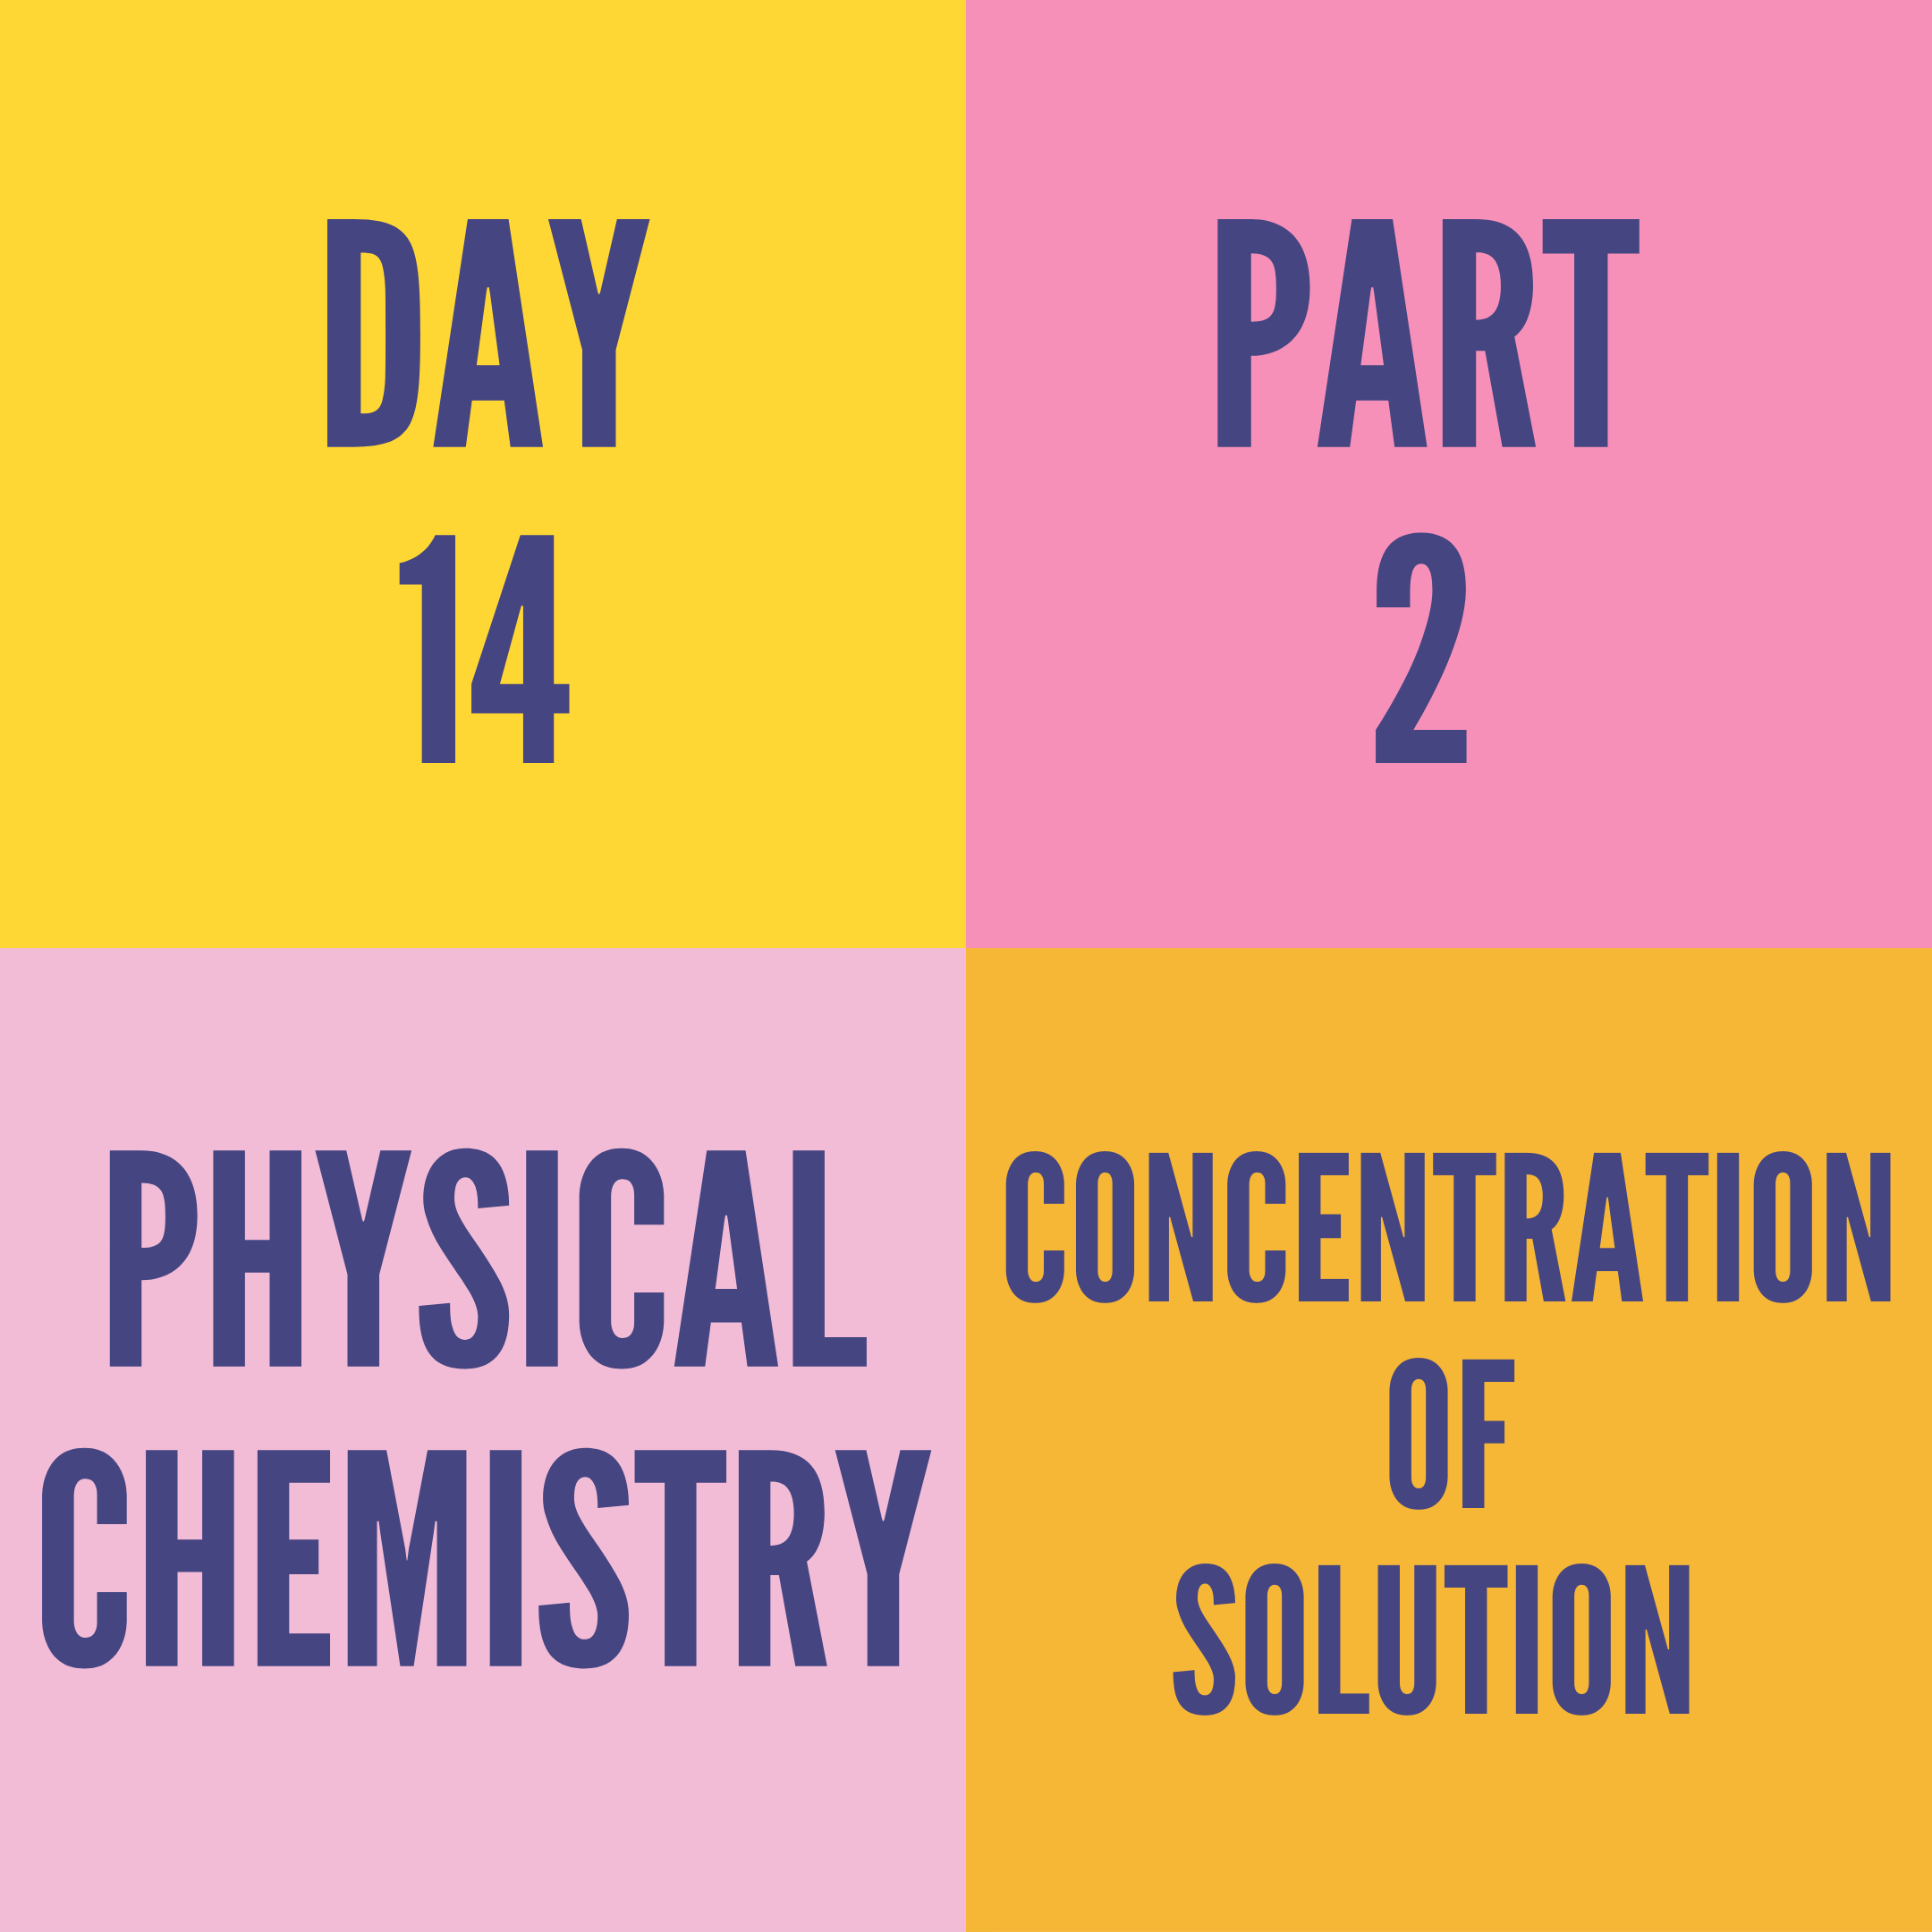 DAY-14 PART-2 CONCENTRATION OF SOLUTION